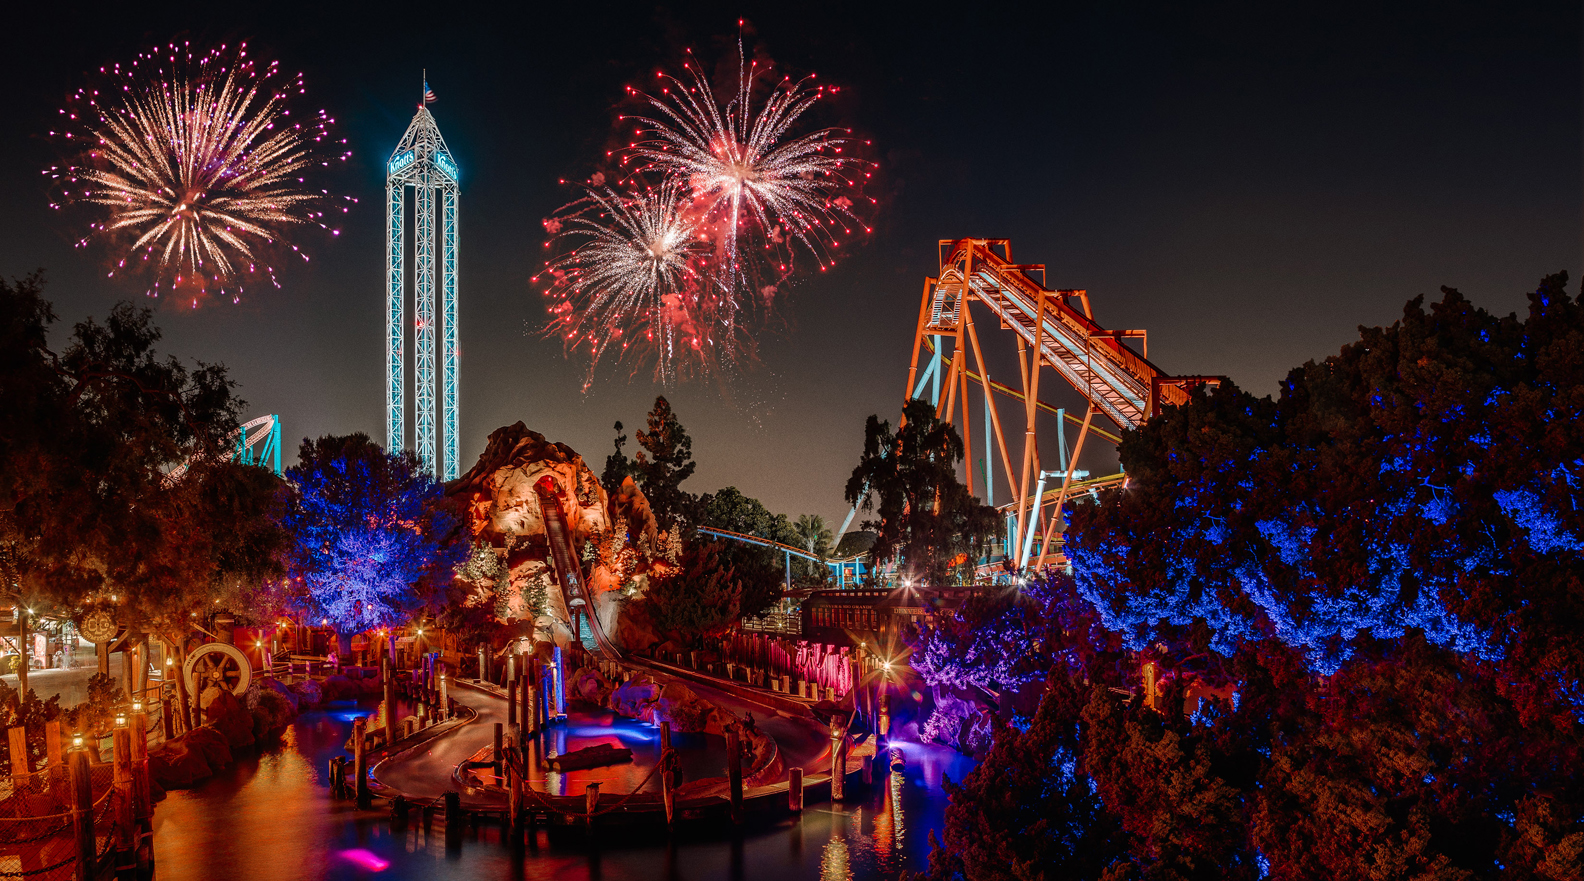 Celebrate New Year S Eve At Knott S Berry Farm To Ring In